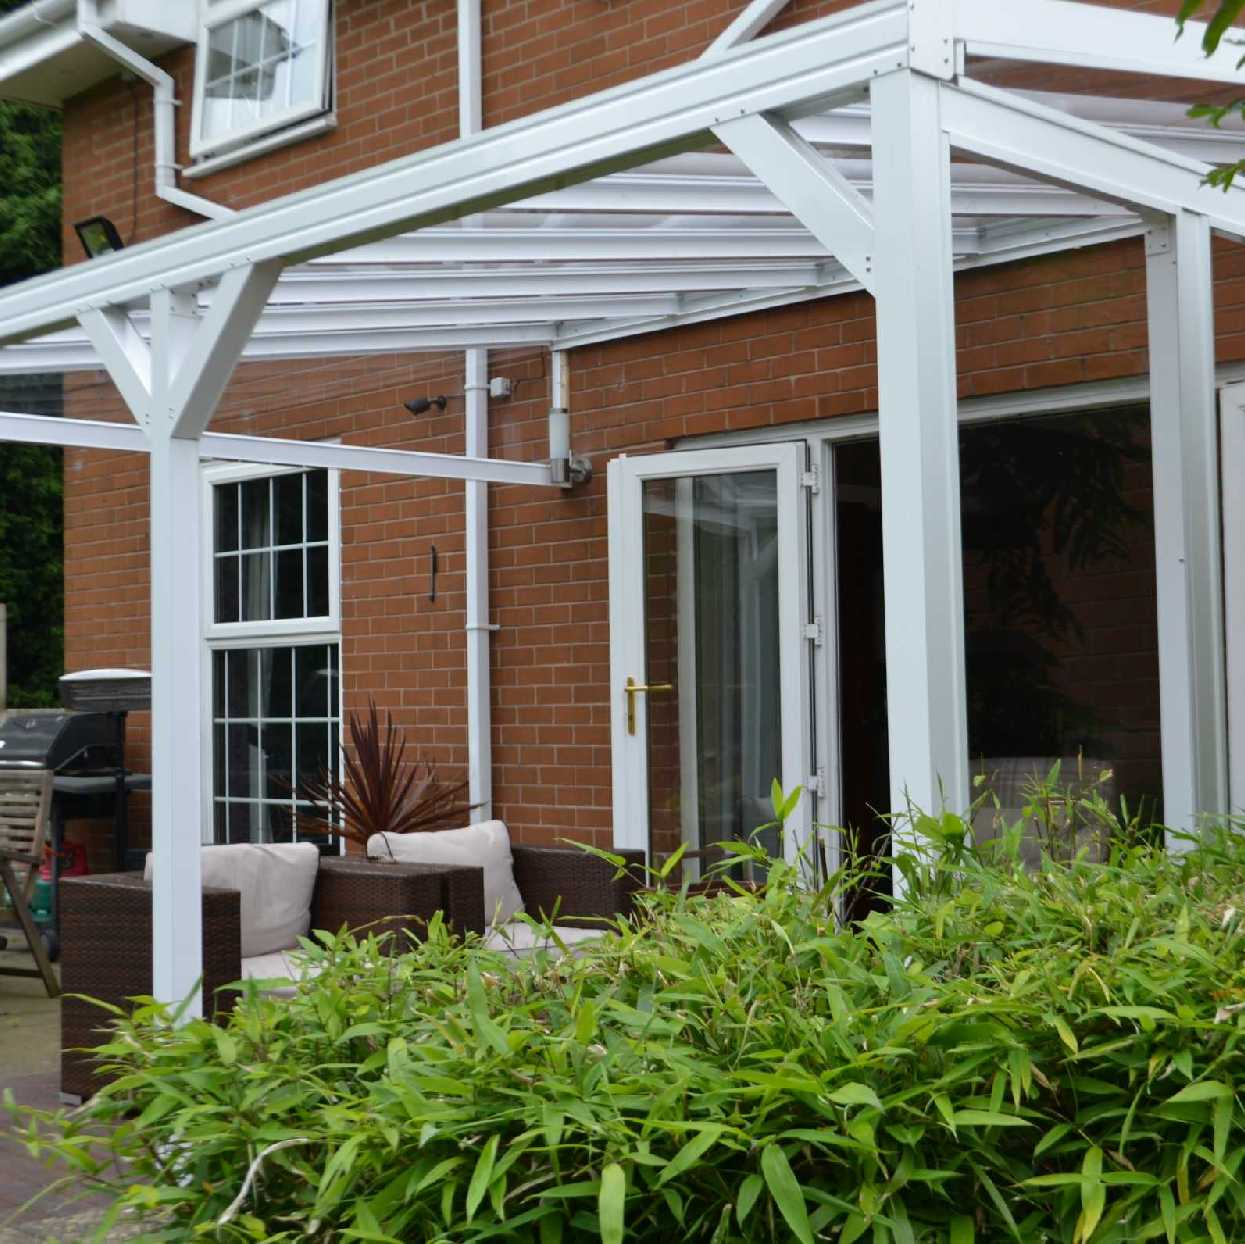 Omega Smart Lean-To Canopy with 6mm Glass Clear Plate Polycarbonate Glazing - 8.4m (W) x 4.0m (P), (4) Supporting Posts from Omega Build